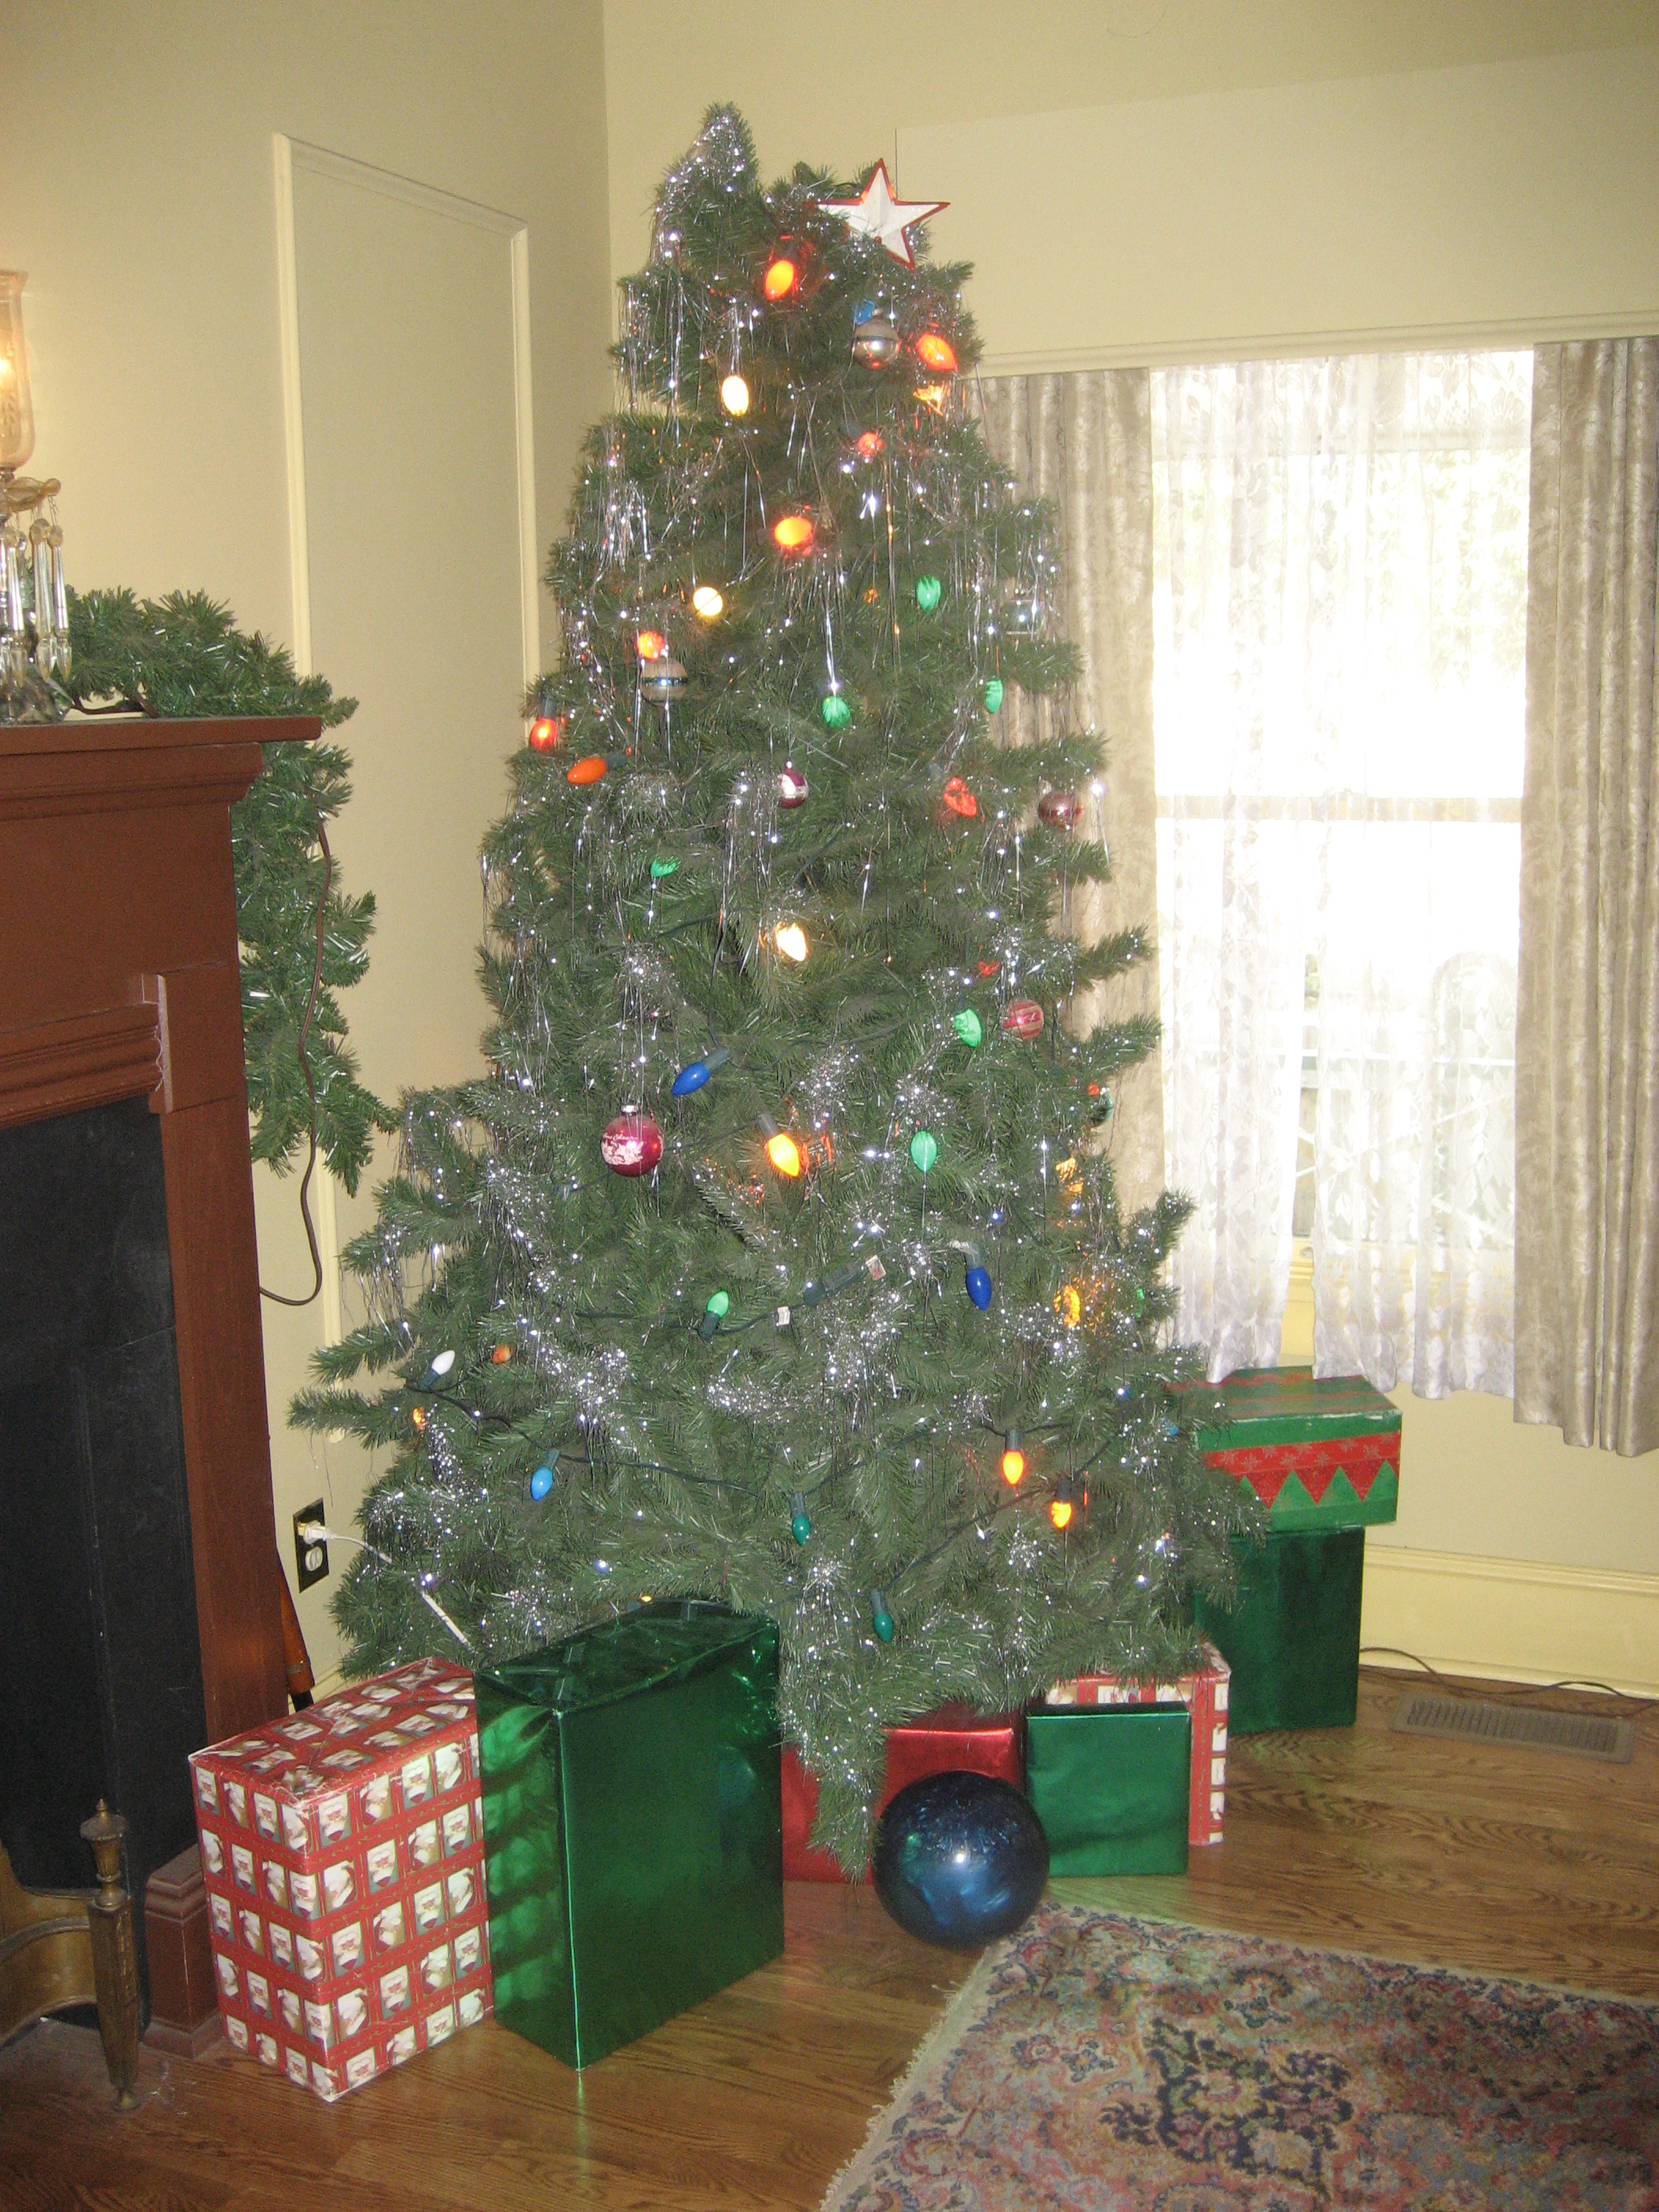 The Parkers' Christmas tree, complete with bowling ball and BB gun tucked in the corner